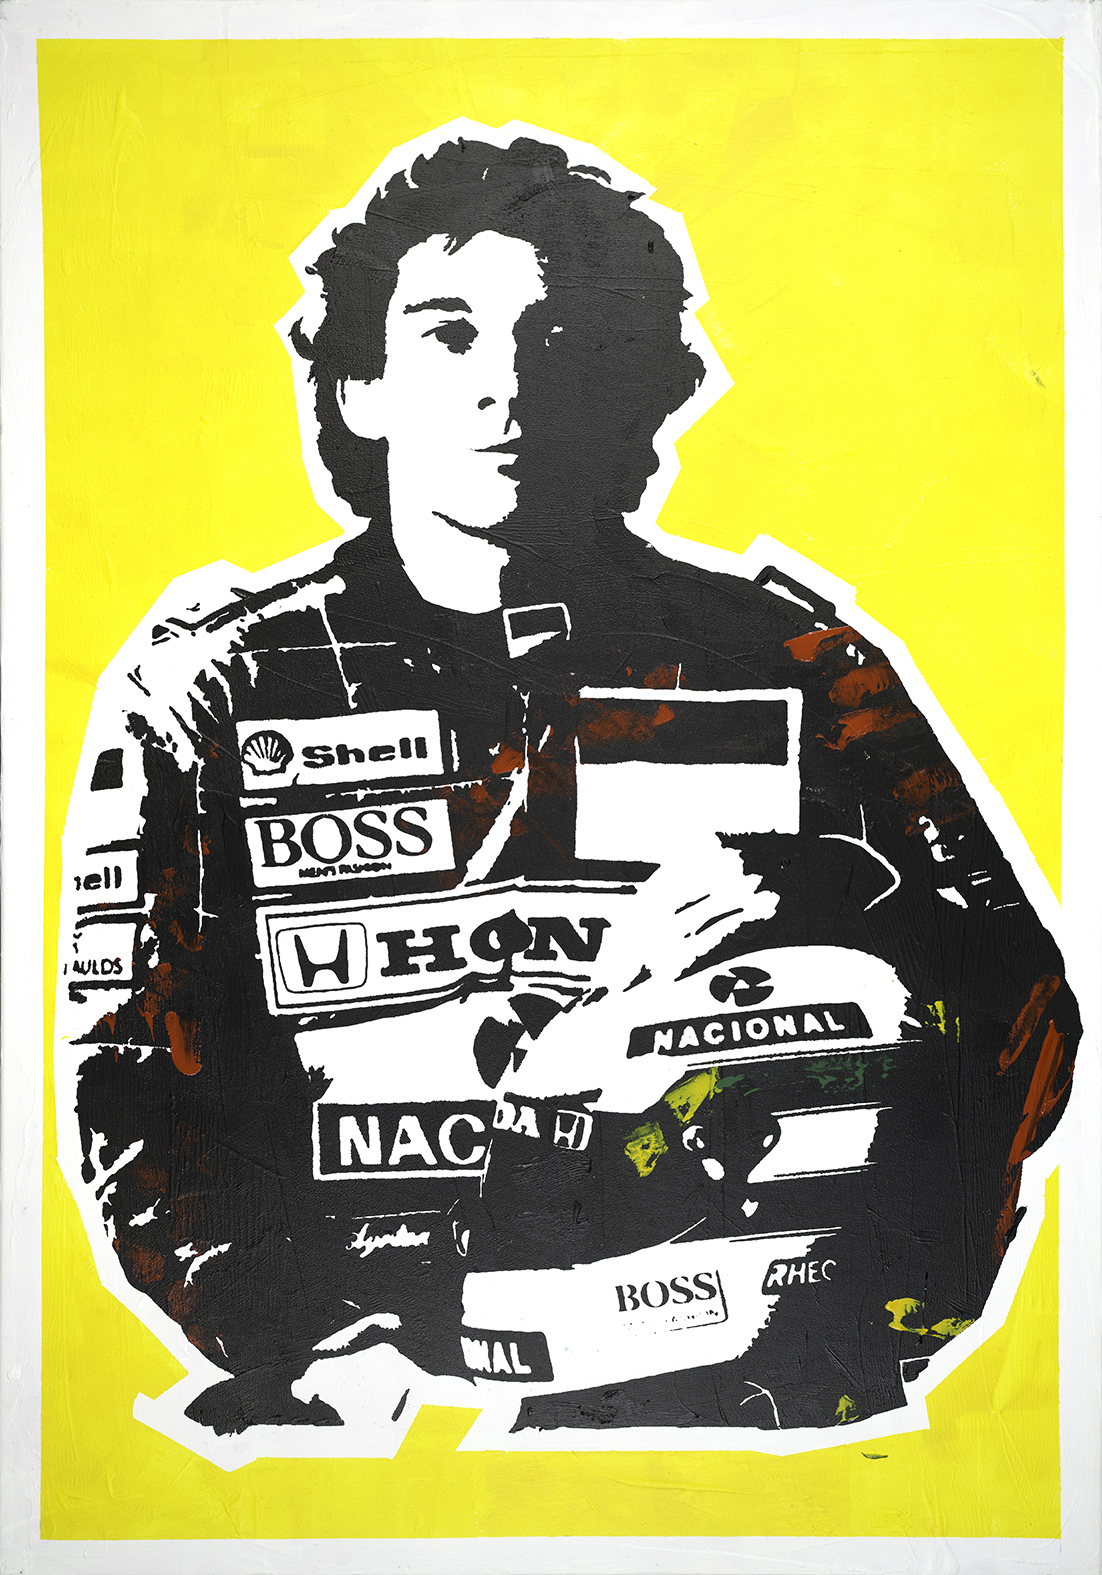 Ayrton Senna by Julian Castaldi. Courtesy of the artist and Mestaria